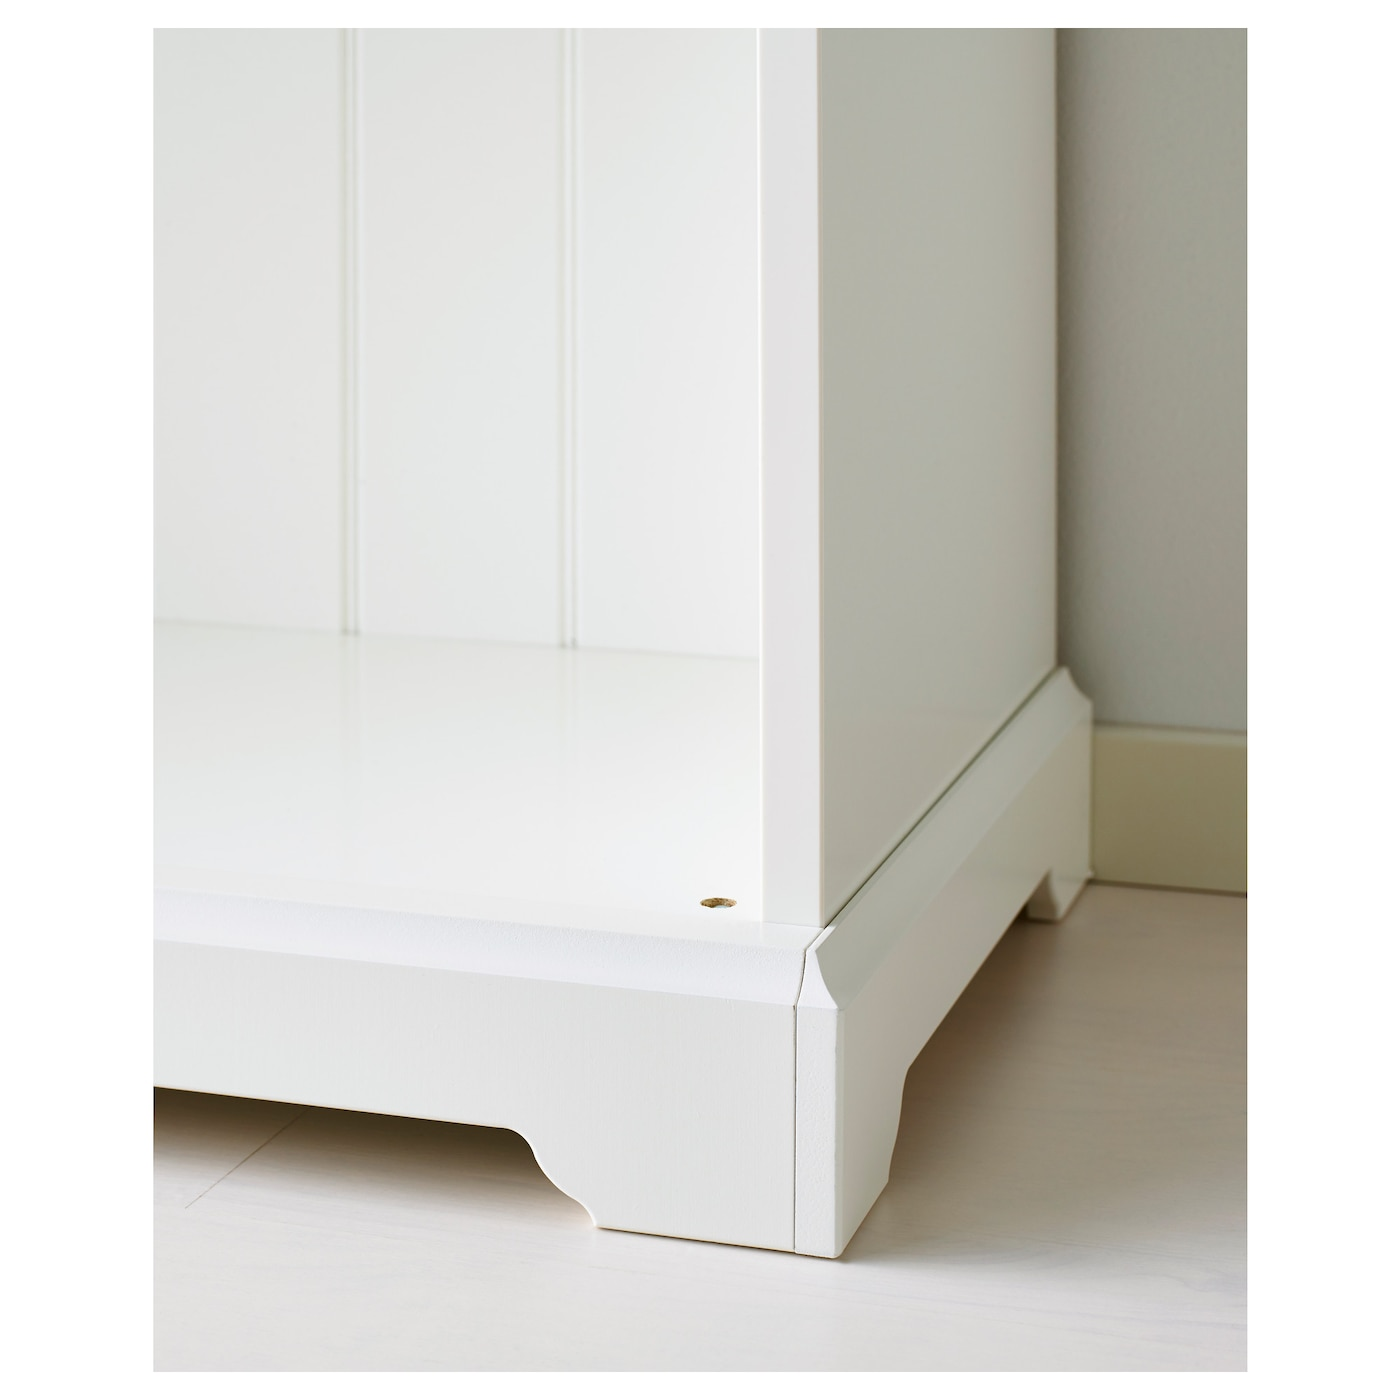 IKEA LIATORP bookcase The shelves are adjustable